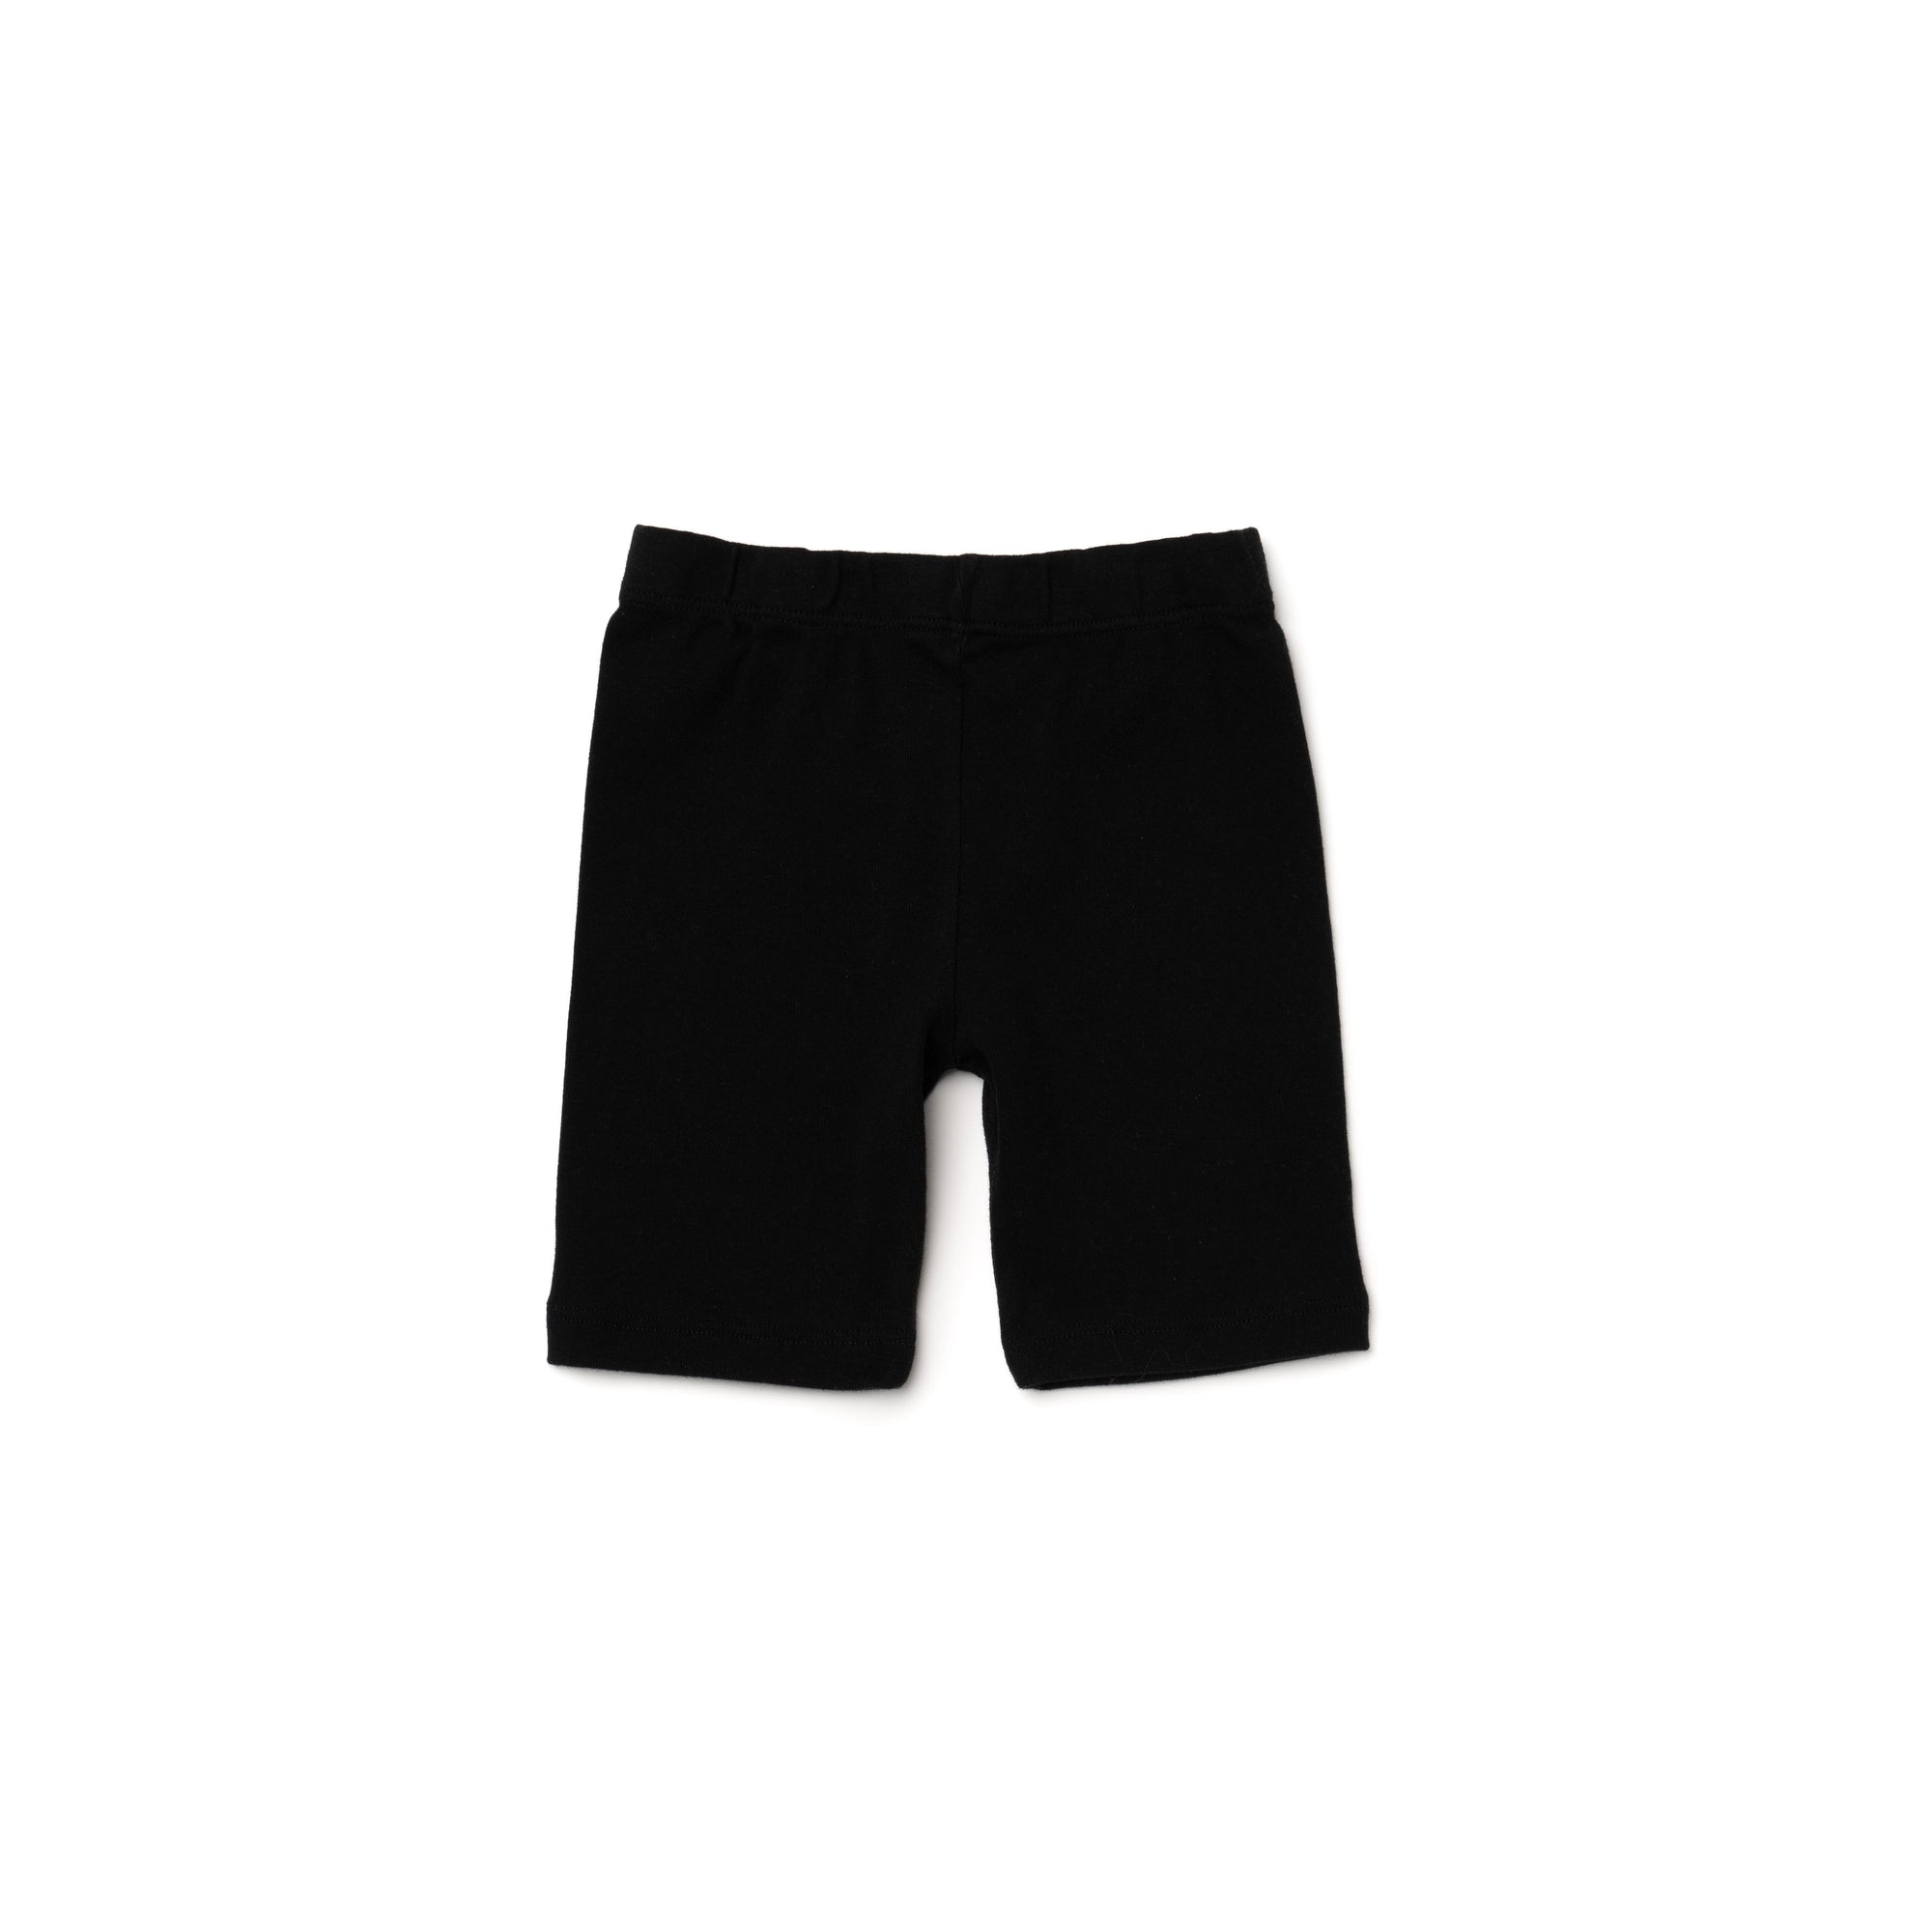 Organic Cotton Bike Shorts, Black